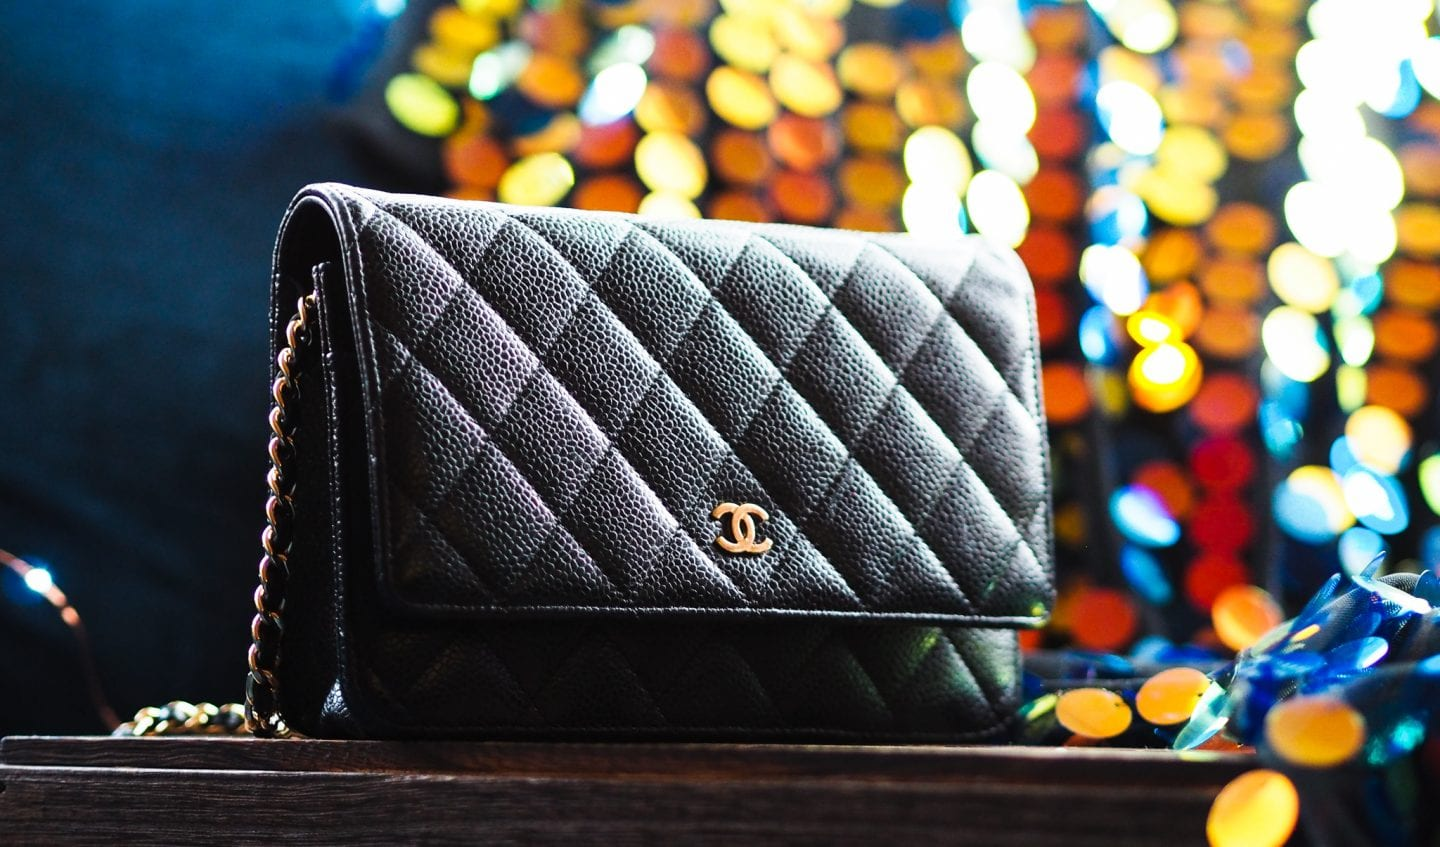 Chanel Wallet On Chain Review: Most Popular Chanel Bag?